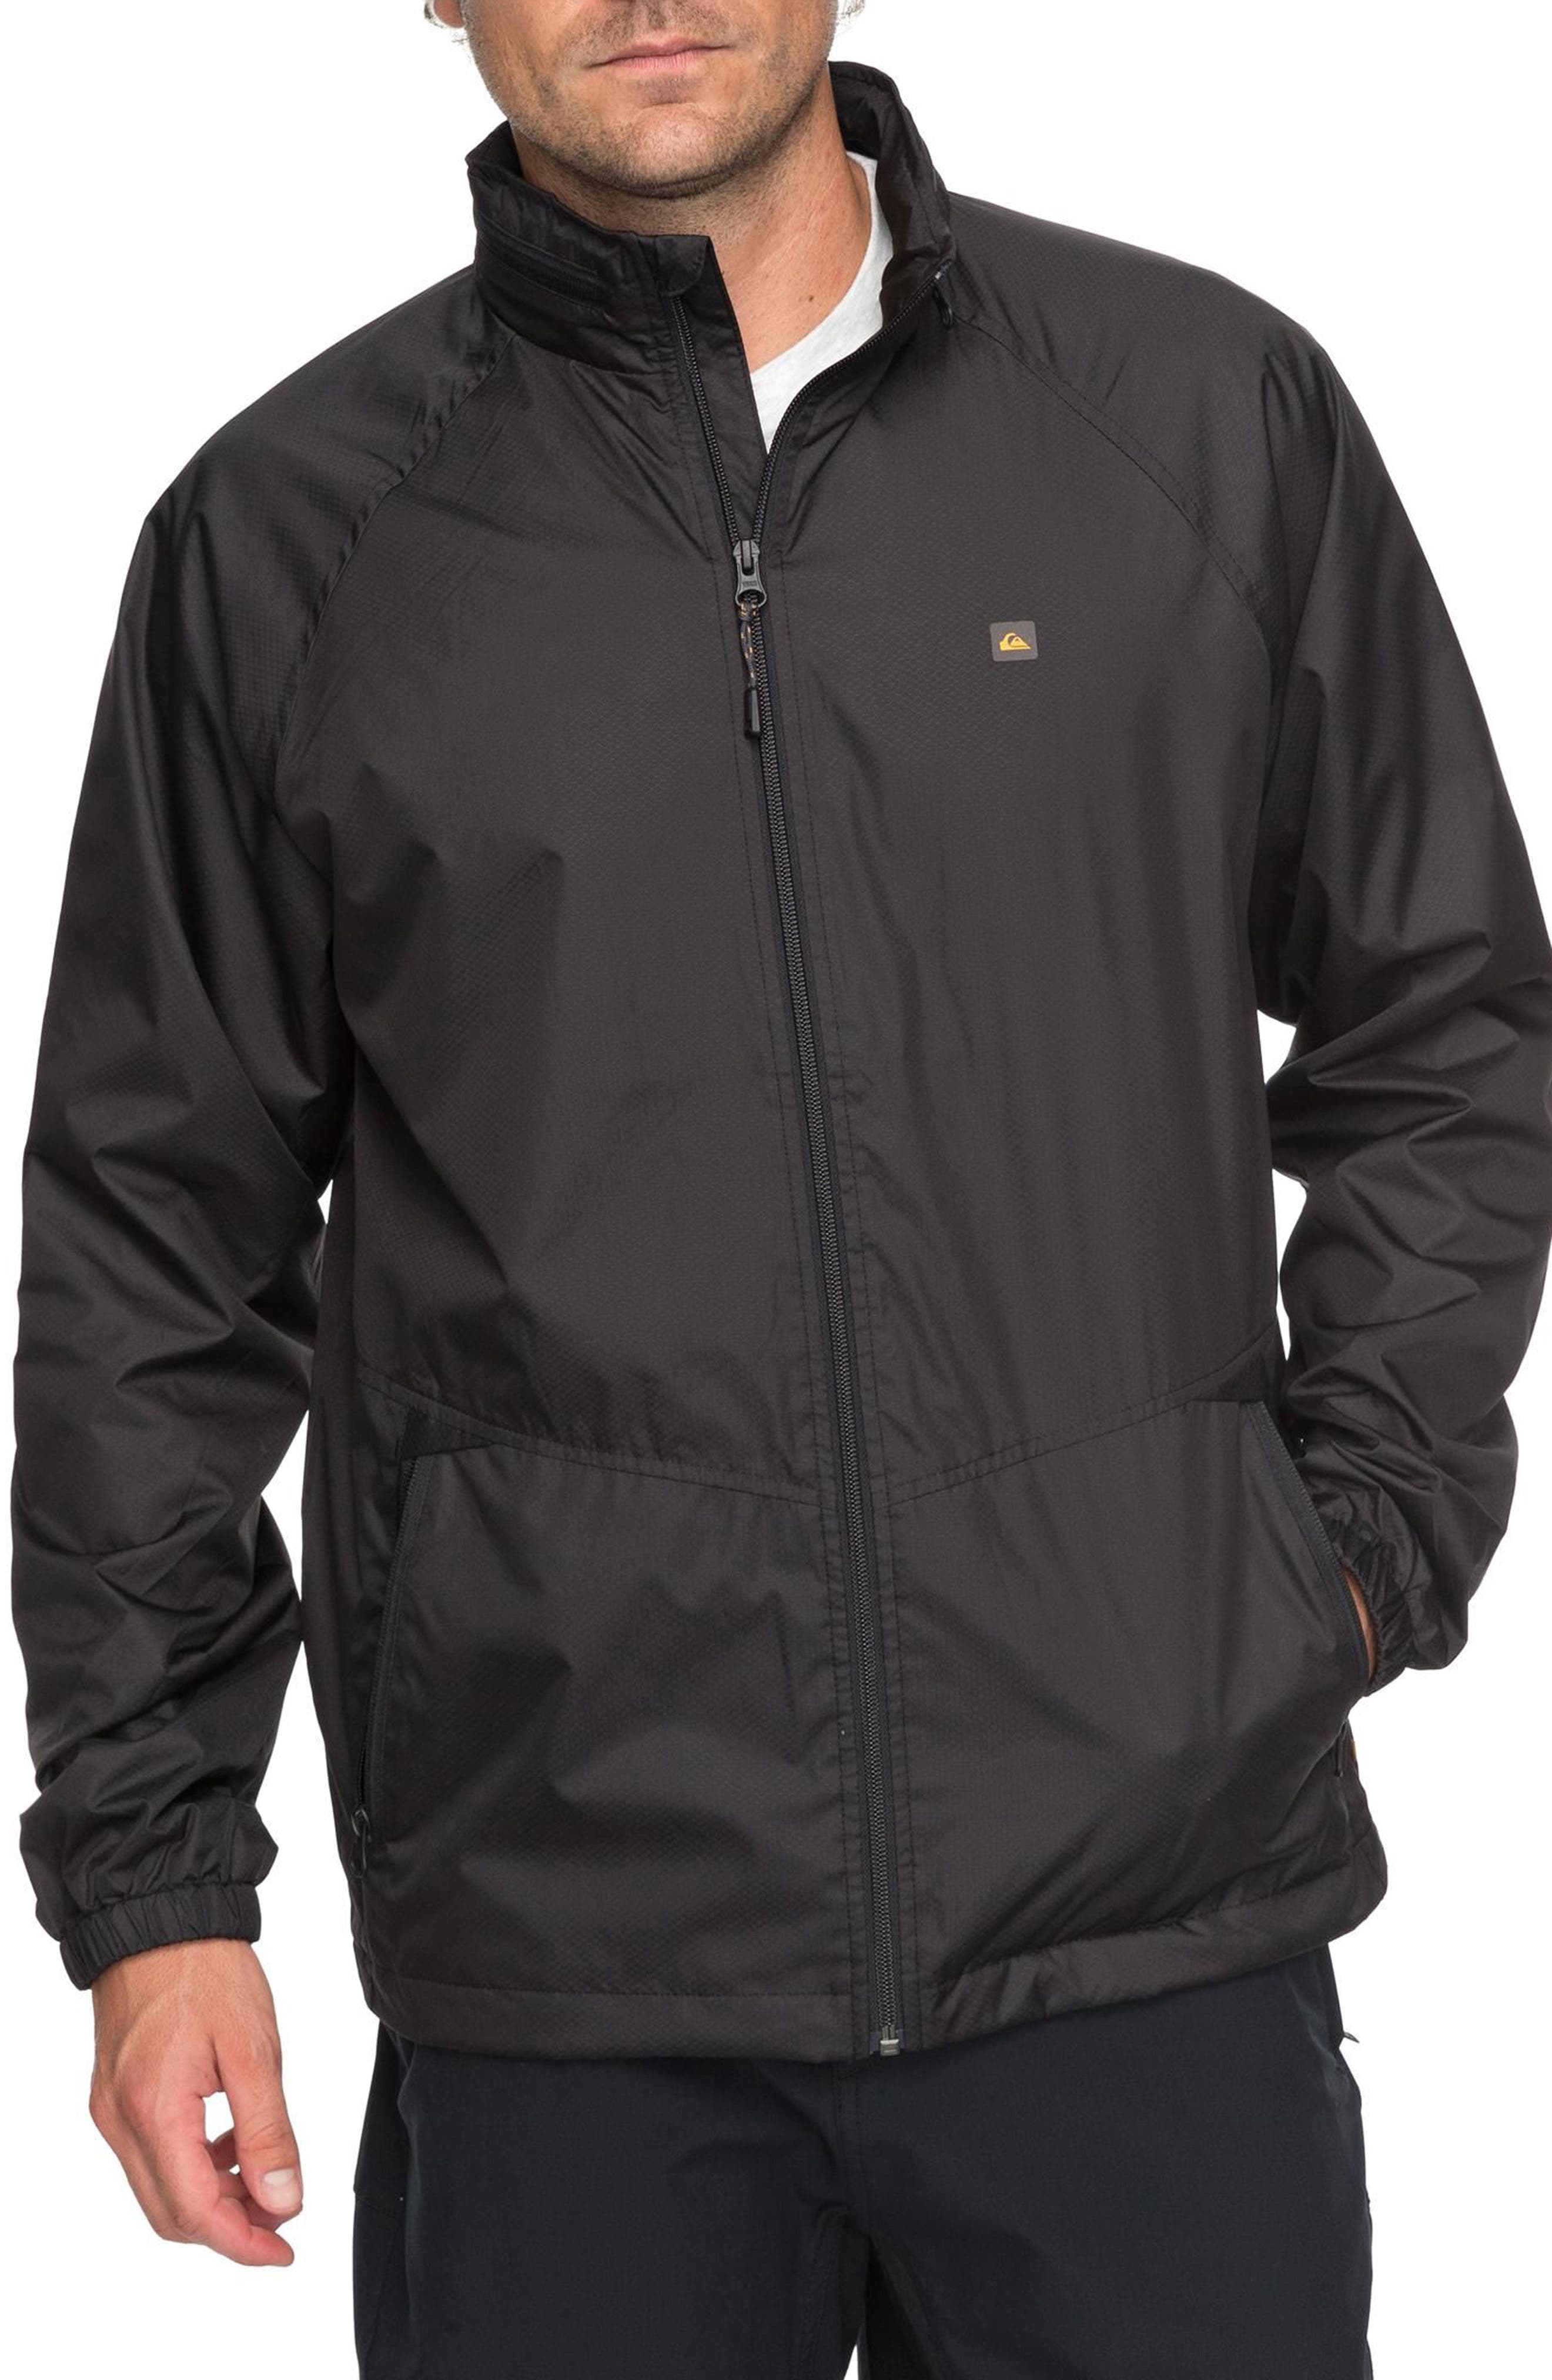 Shell Shock Water Repellent Windbreaker,                             Main thumbnail 1, color,                             002